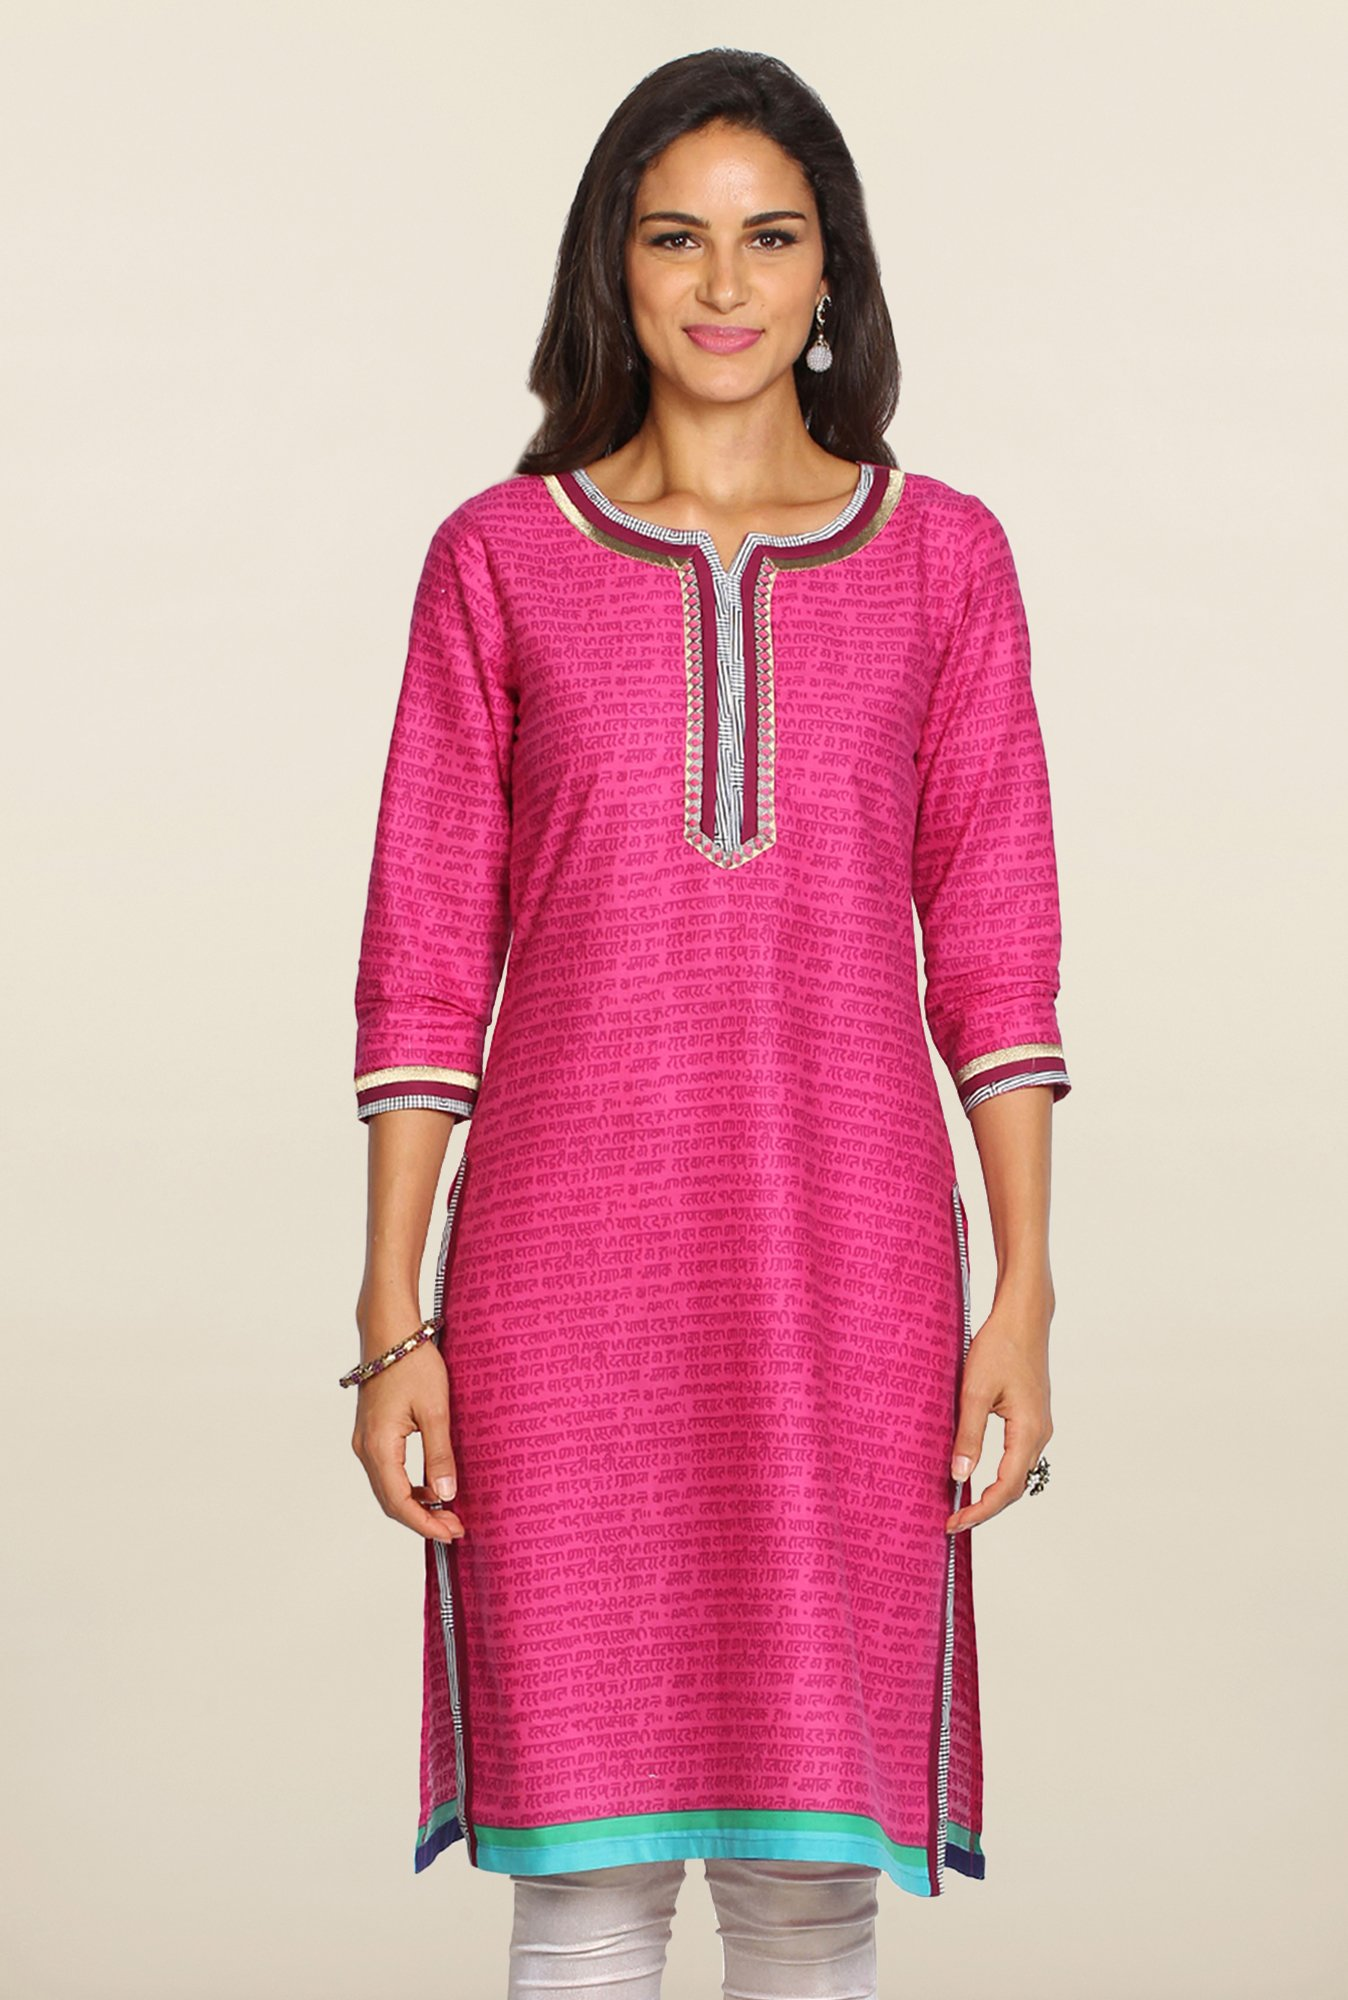 Soch Pink & Purple Embroidered Cotton Kurti